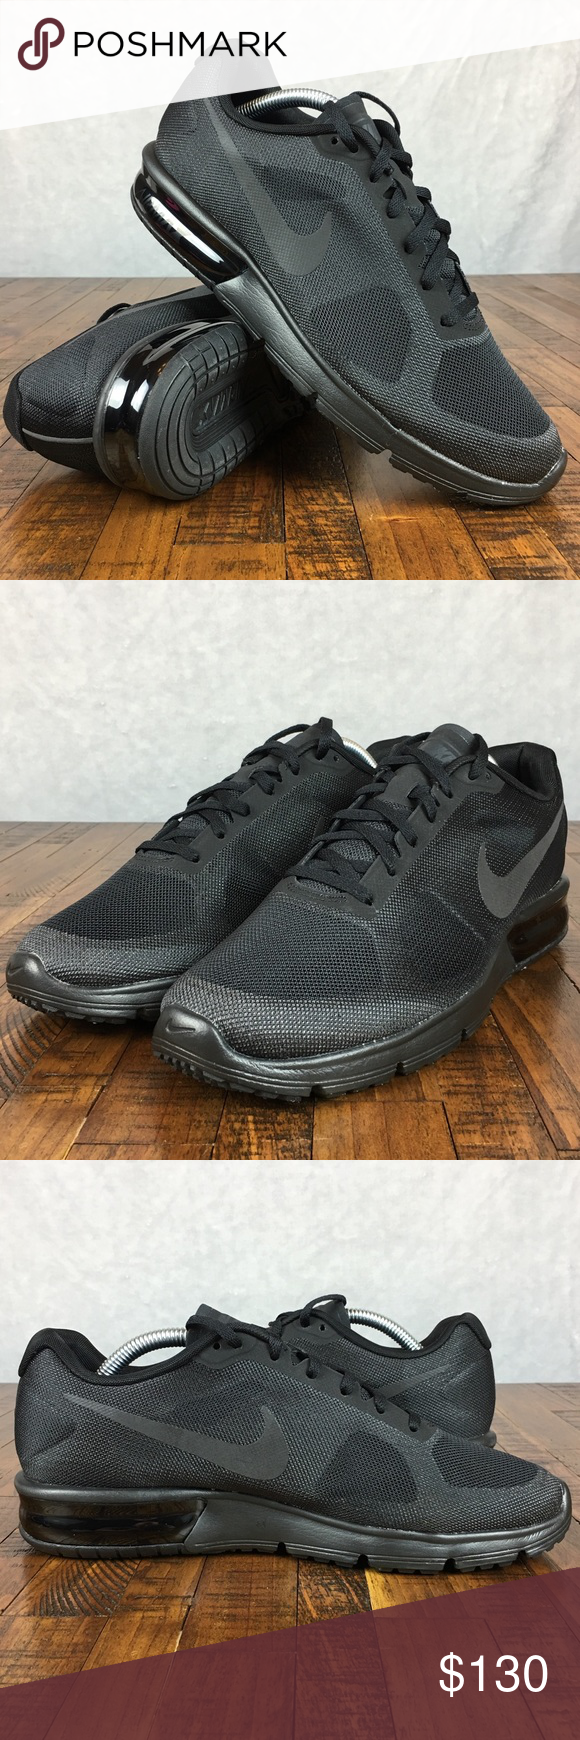 0efc00c924 NEW Nike Air Max Sequent Running Shoes 719916-099 NIKE AIR MAX SEQUENT  RUNNING SNEAKERS #719916-099 Size: 10, Womens Color: Triple Black  Condition: New ...